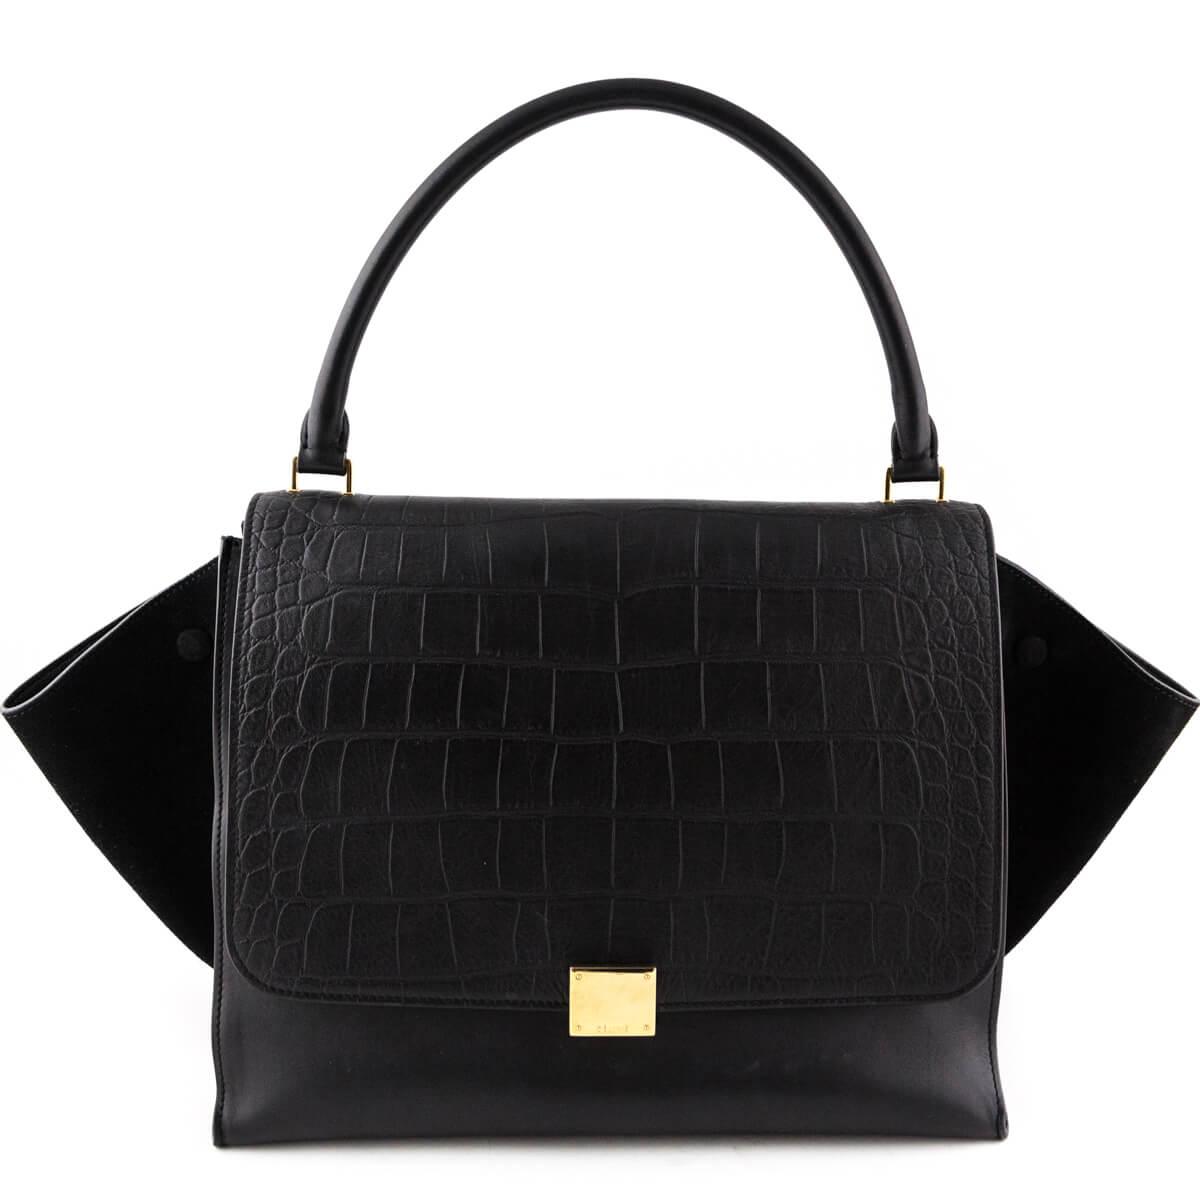 8c5d8a186bd1 Celine Black Suede and Croc Embossed Calfskin Medium Trapeze - LOVE that BAG  - Preowned Authentic ...